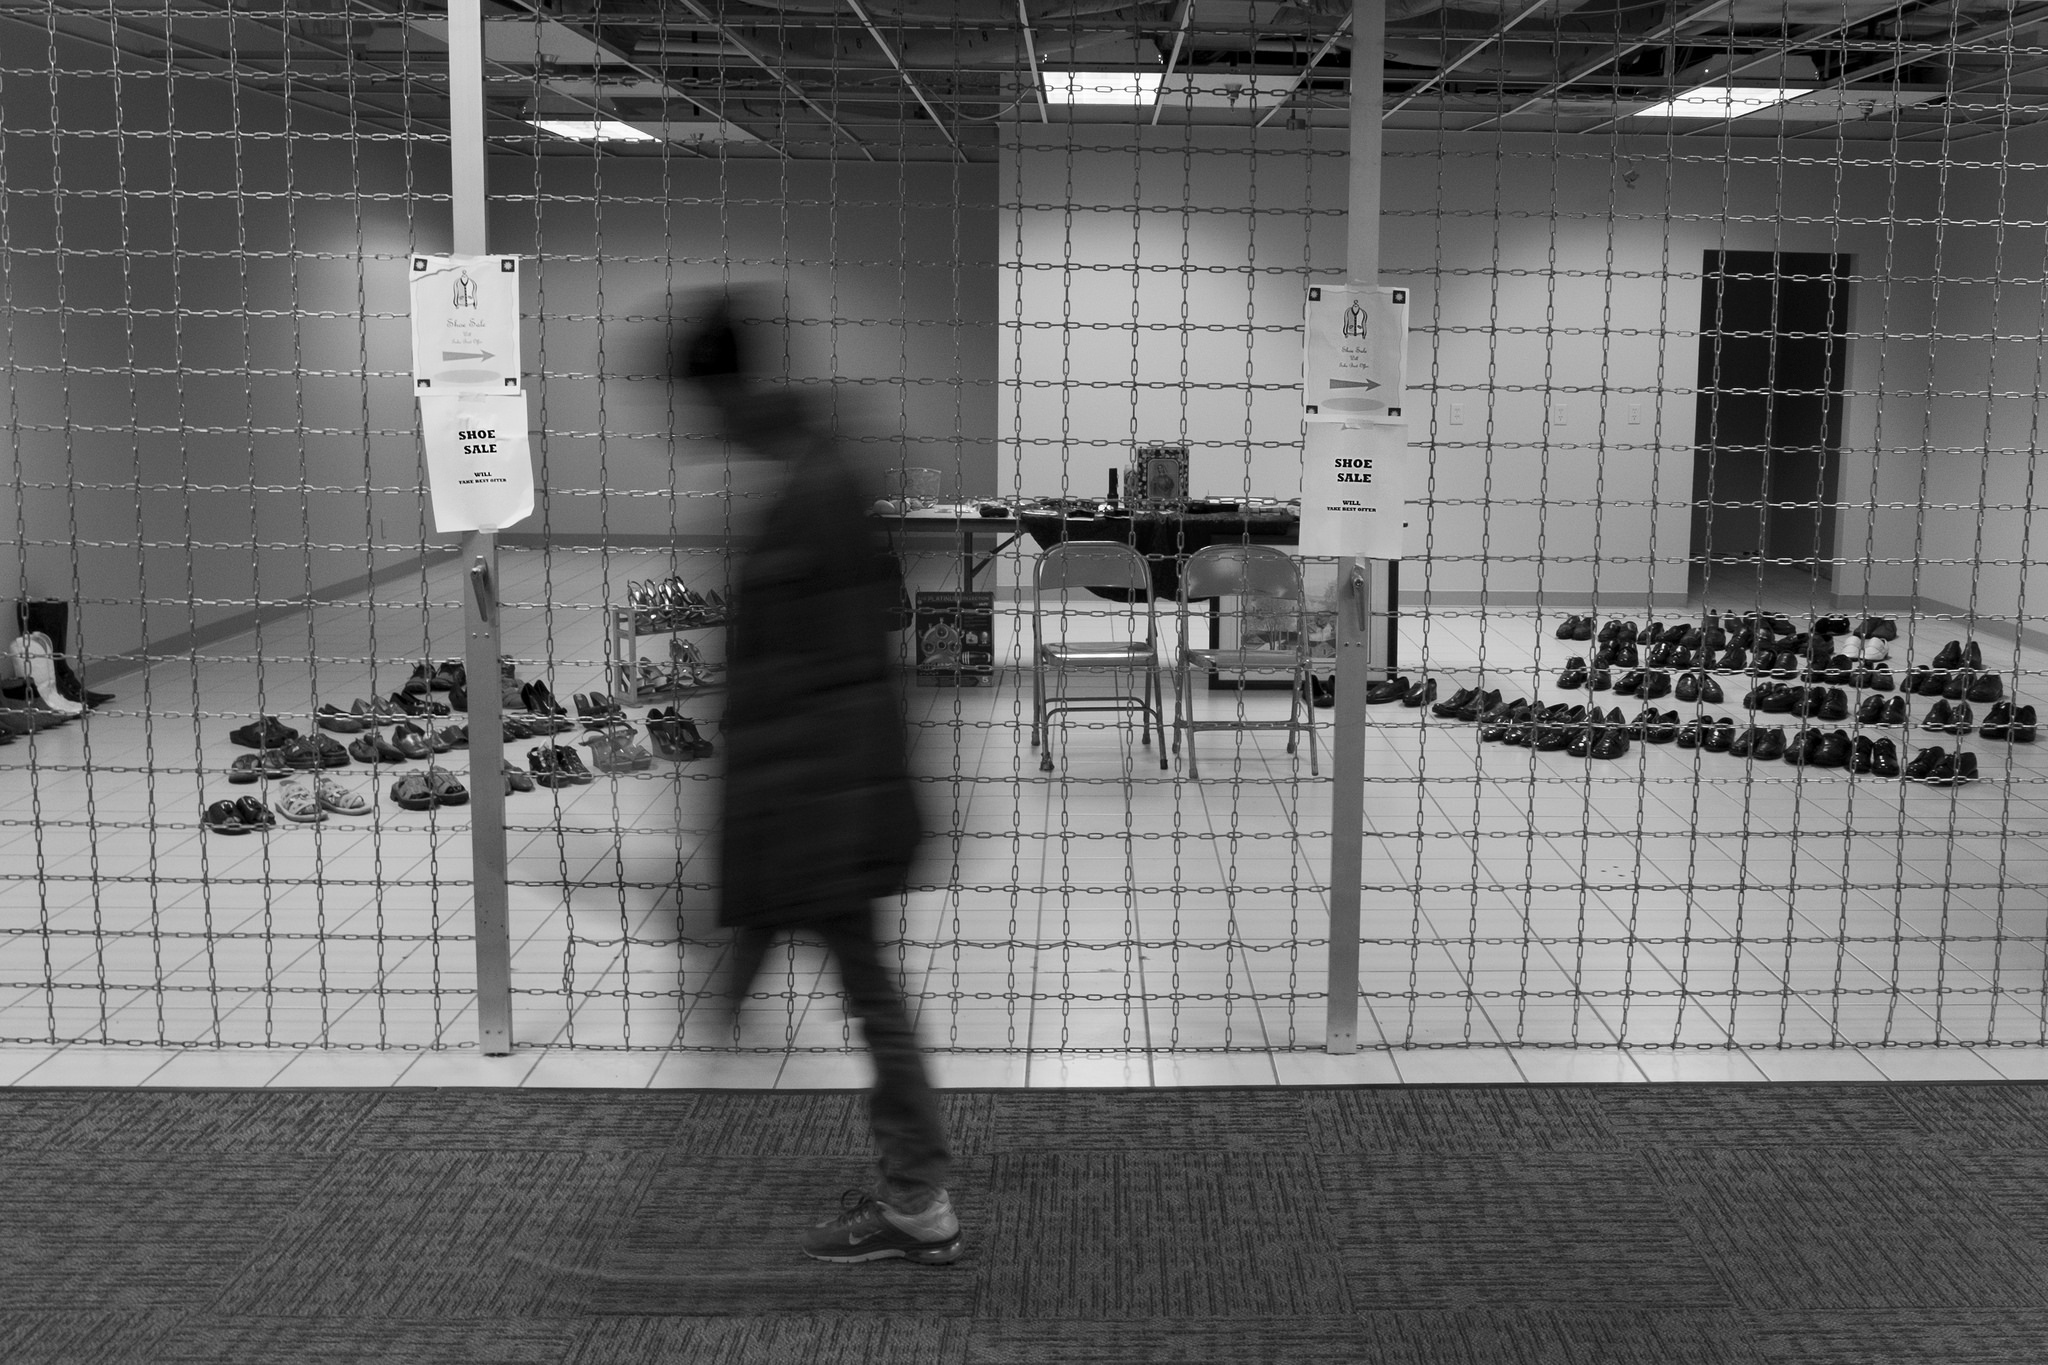 Skywalk 7/10 - Shoe Sale - © 2016 Michael F. Hiatt